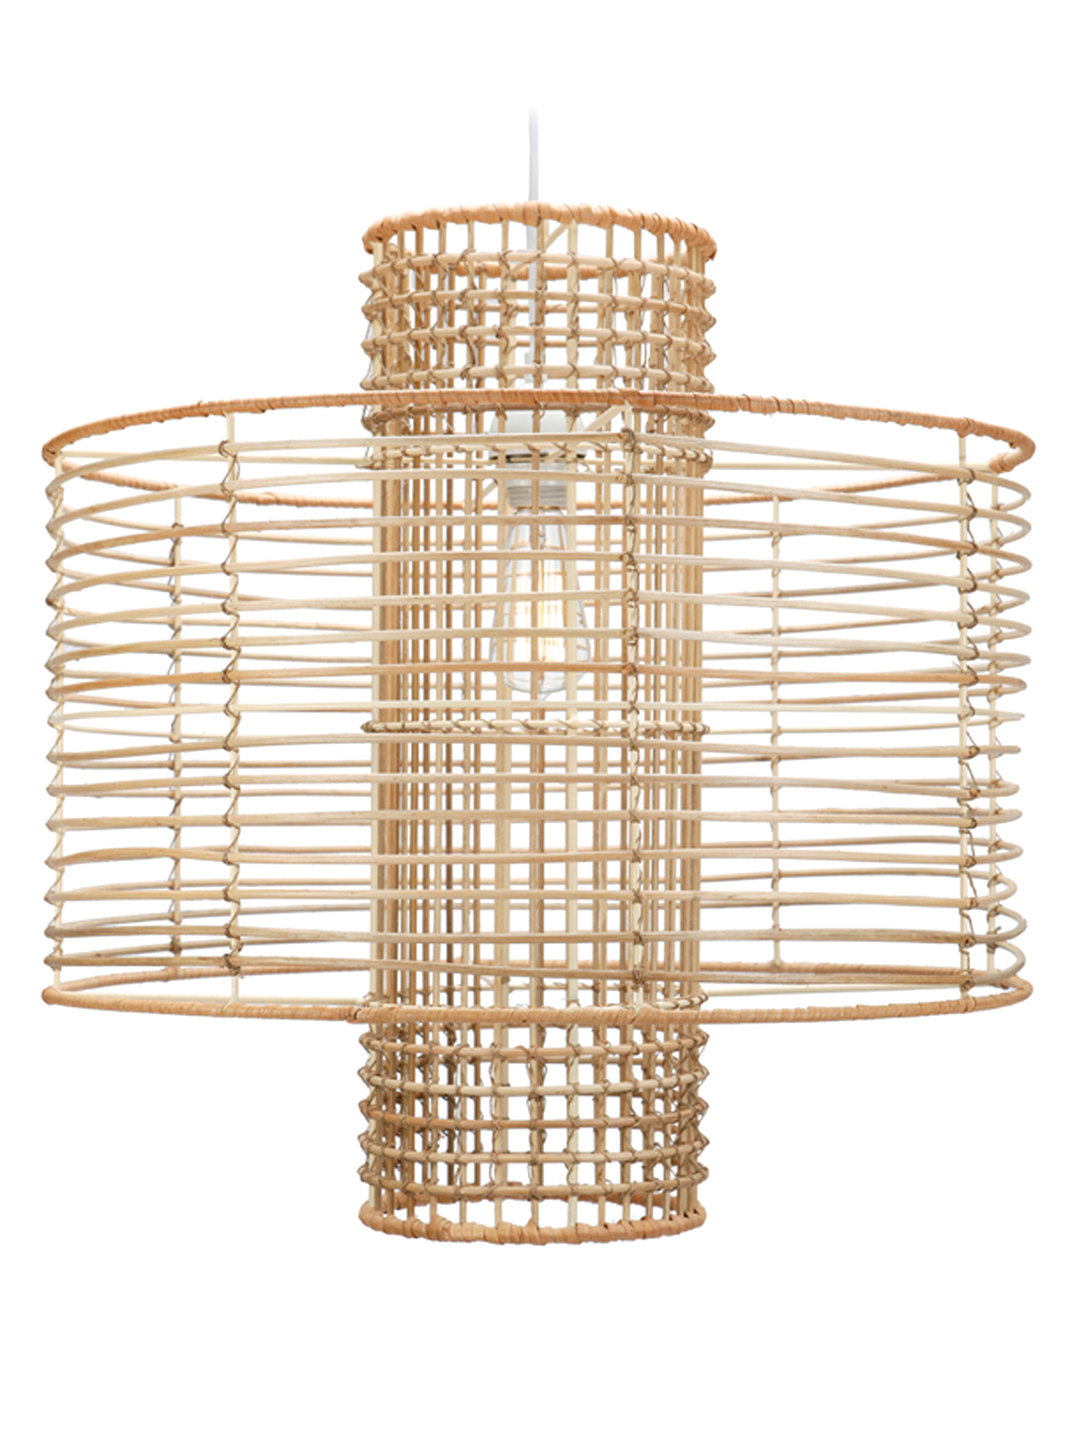 Rattan boho pendant light